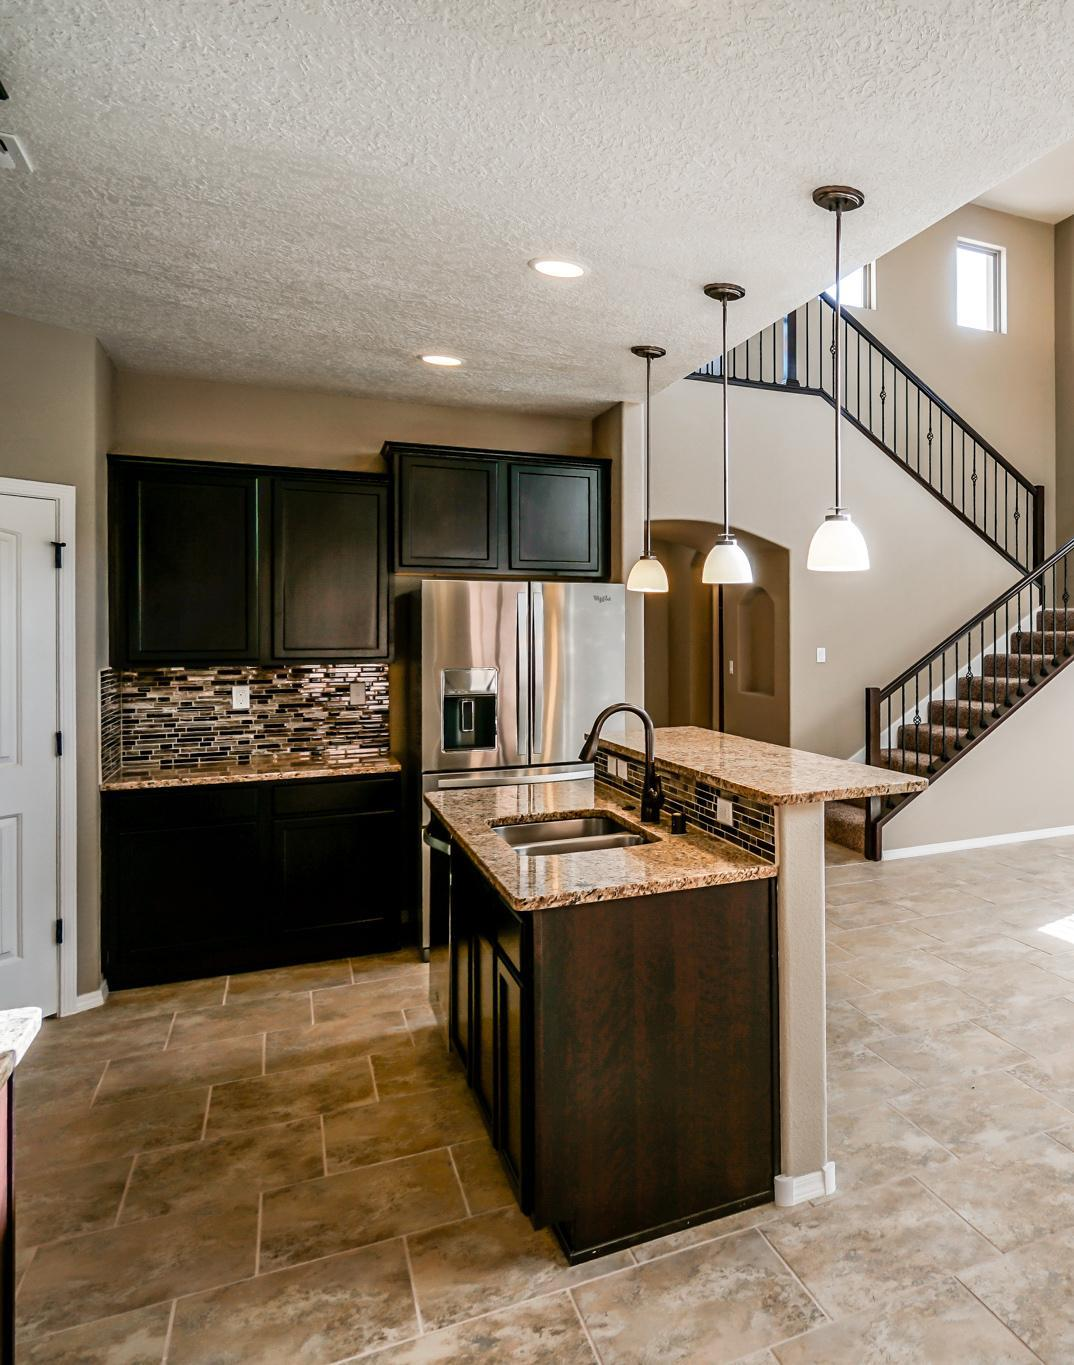 Kitchen featured in The Taylor with Optional 3rd Car Garage By Abrazo Homes in Albuquerque, NM